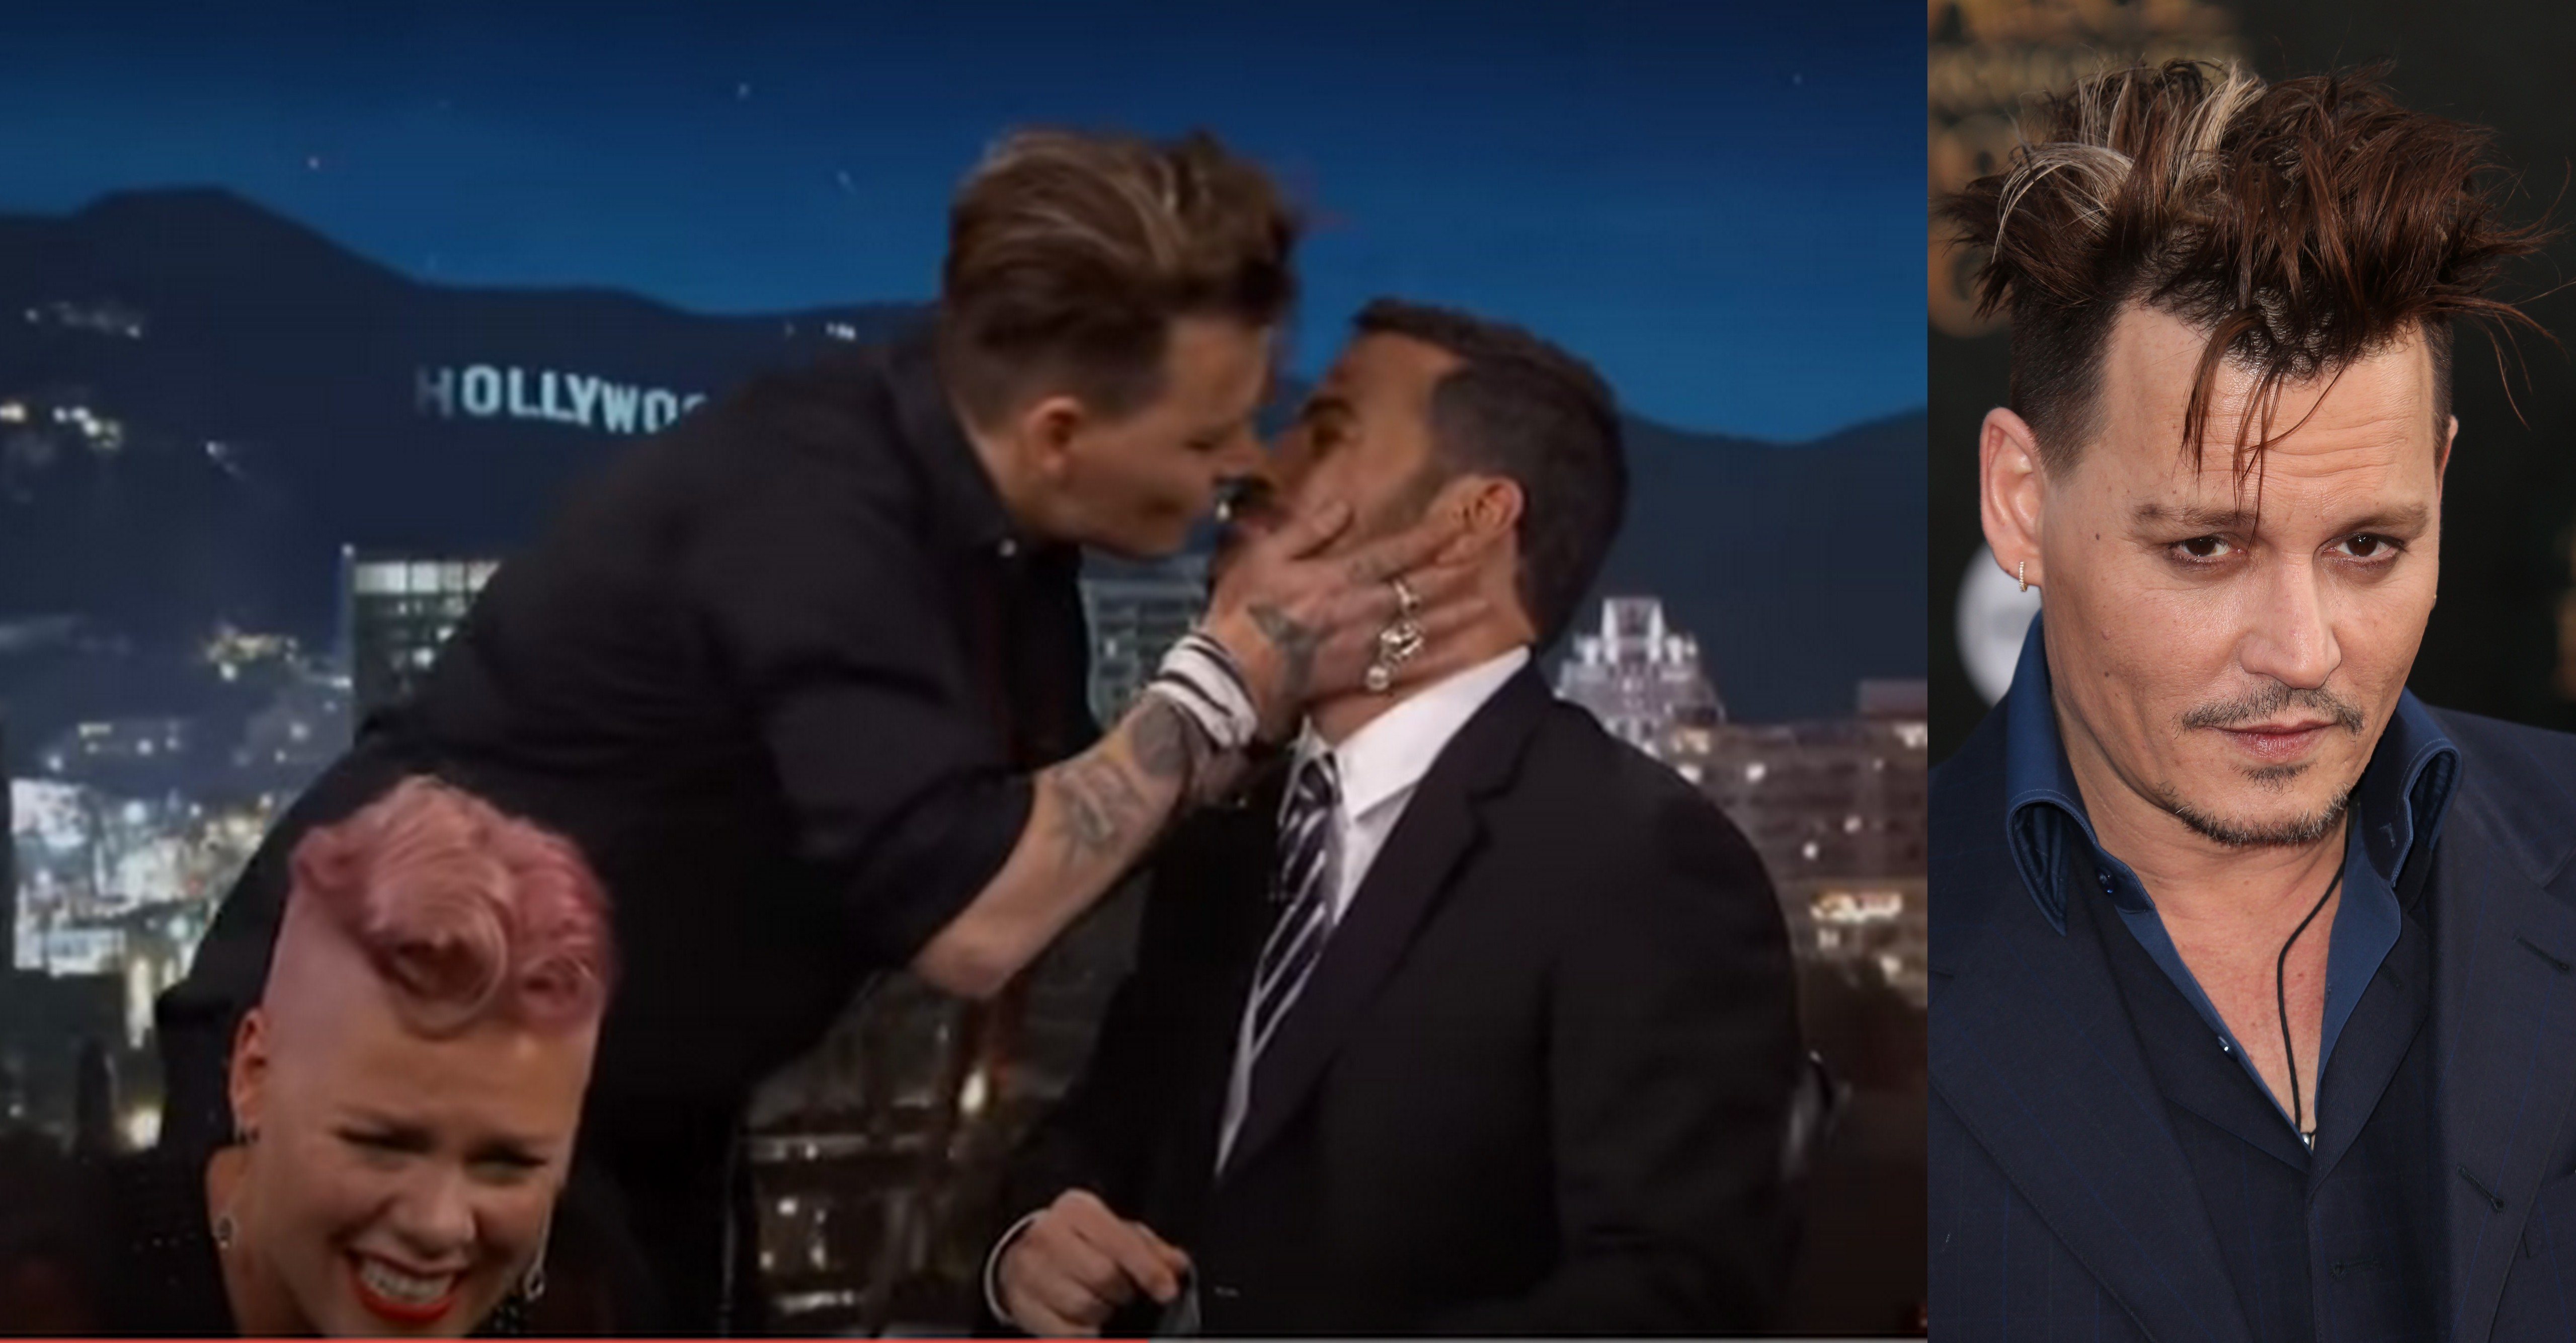 Johnny Depp shows off his new '90s 'do while smooching Jimmy Kimmel